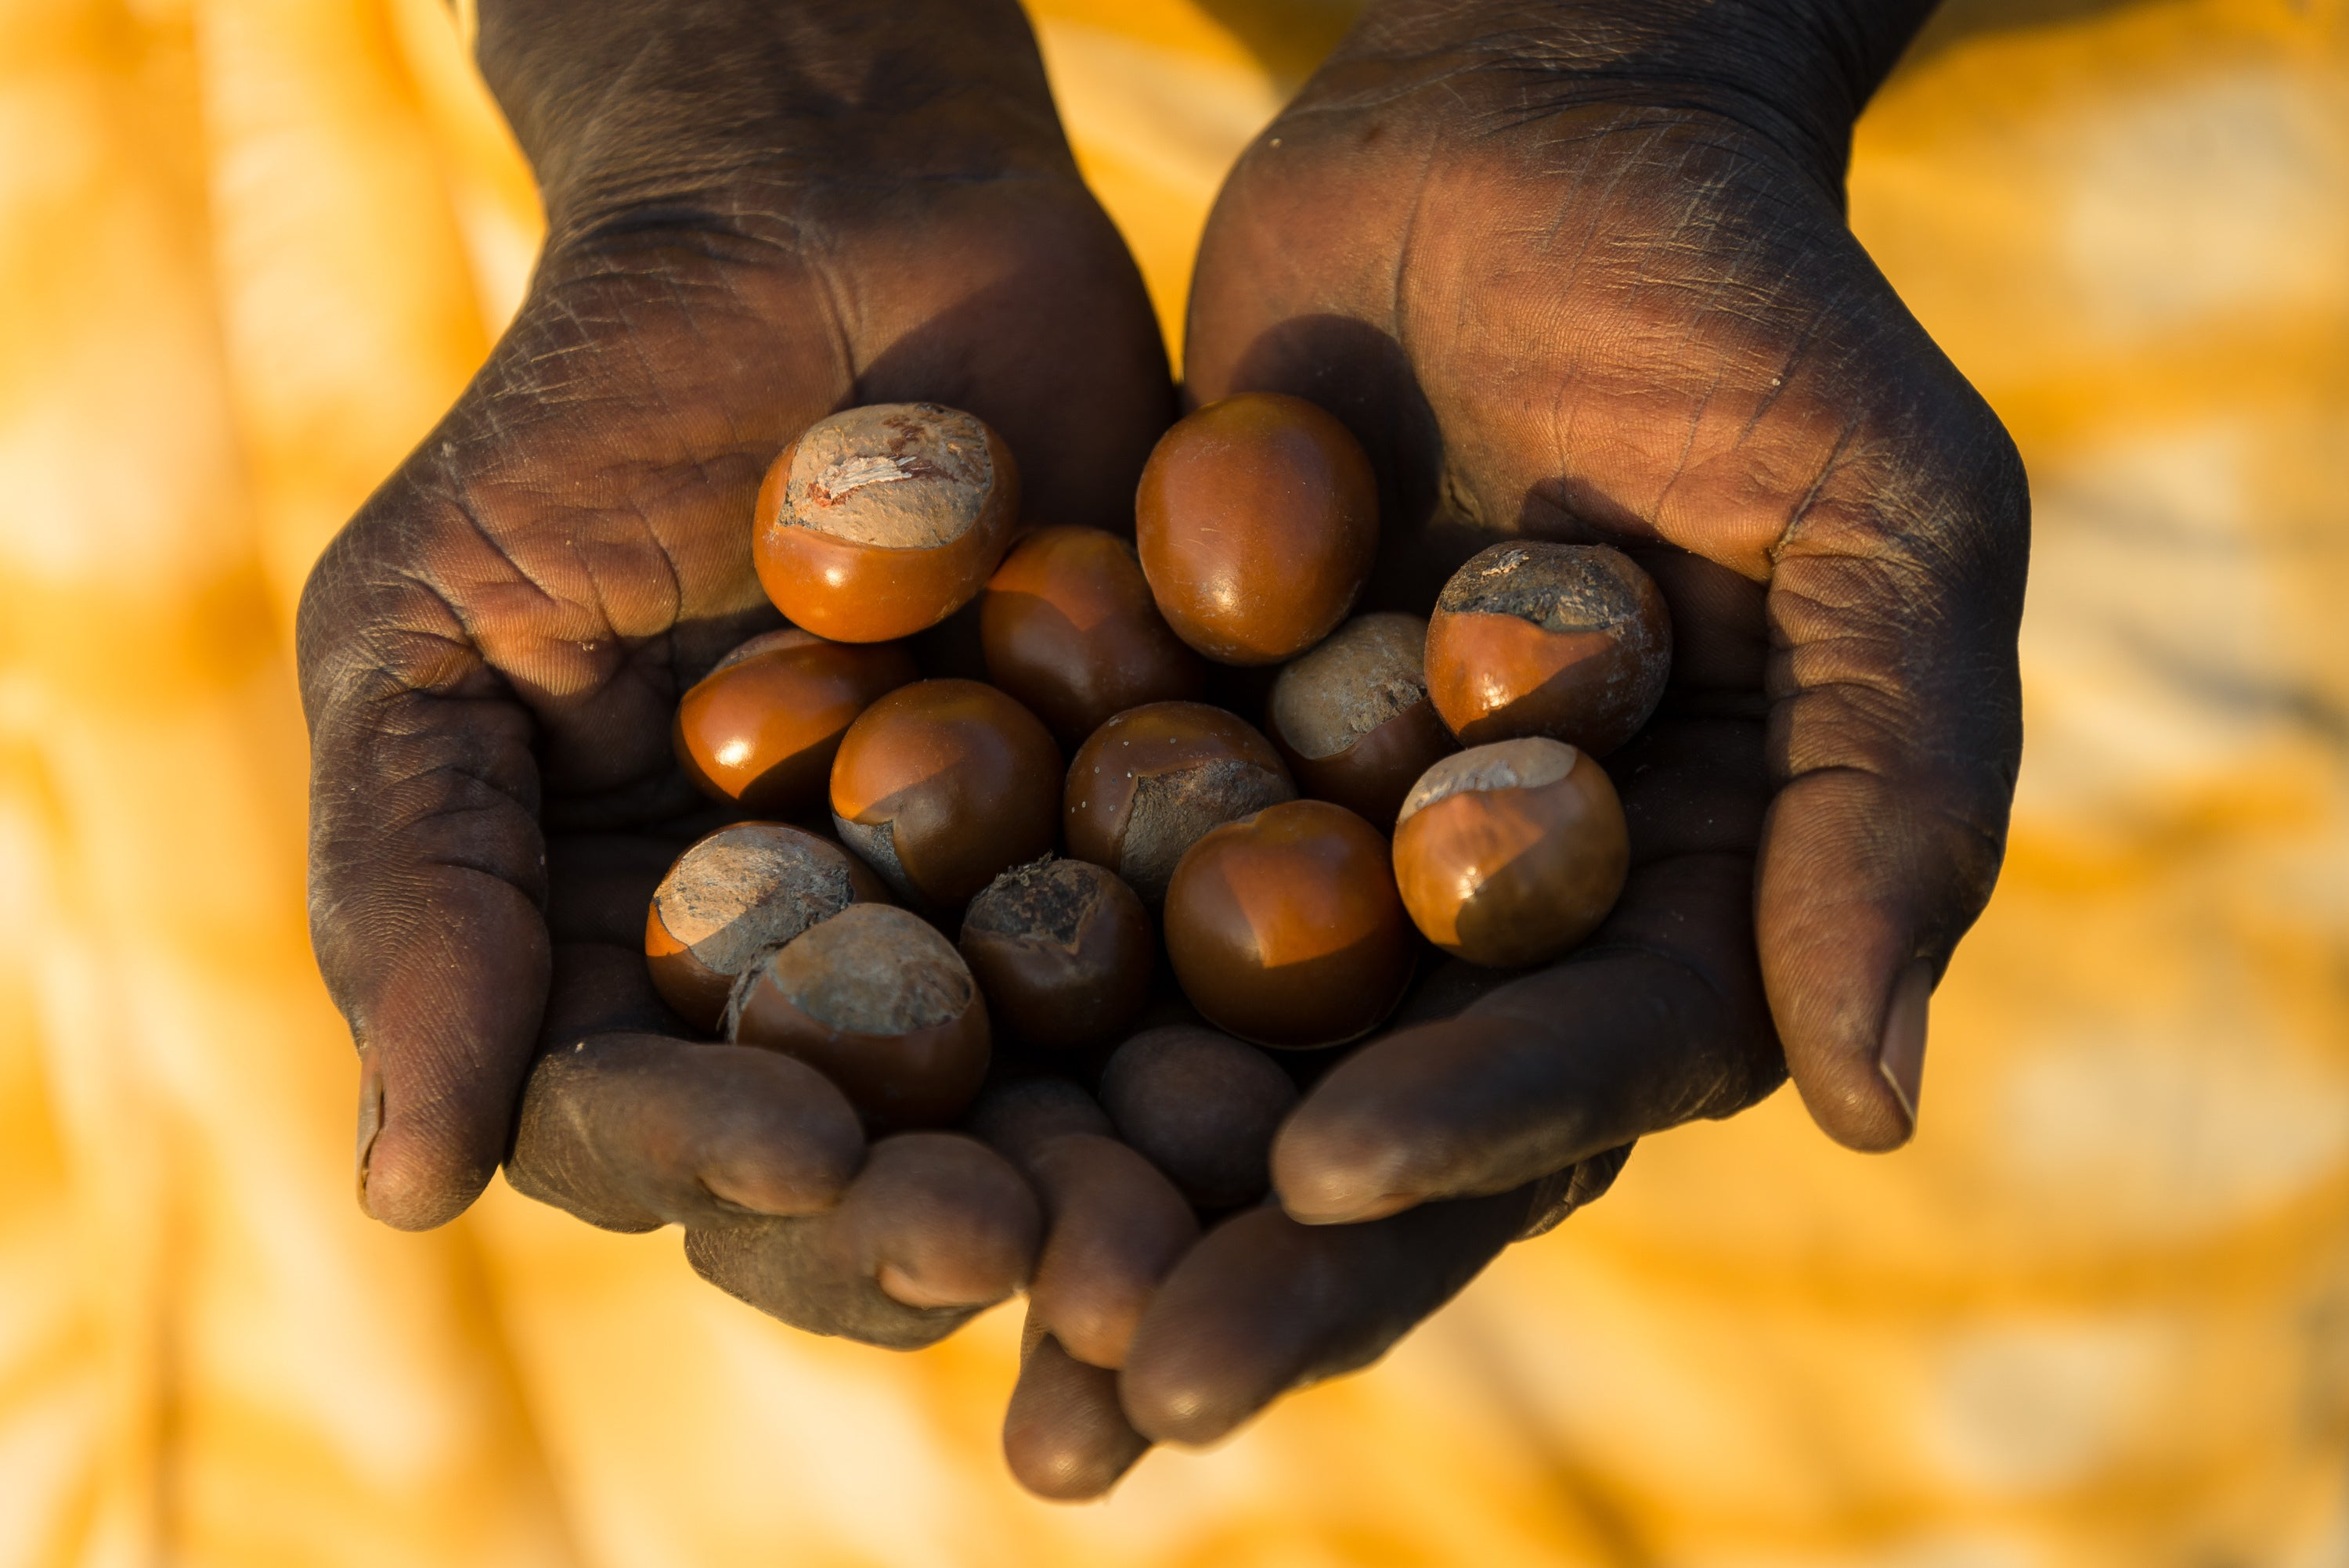 Artisan Hands with Shea